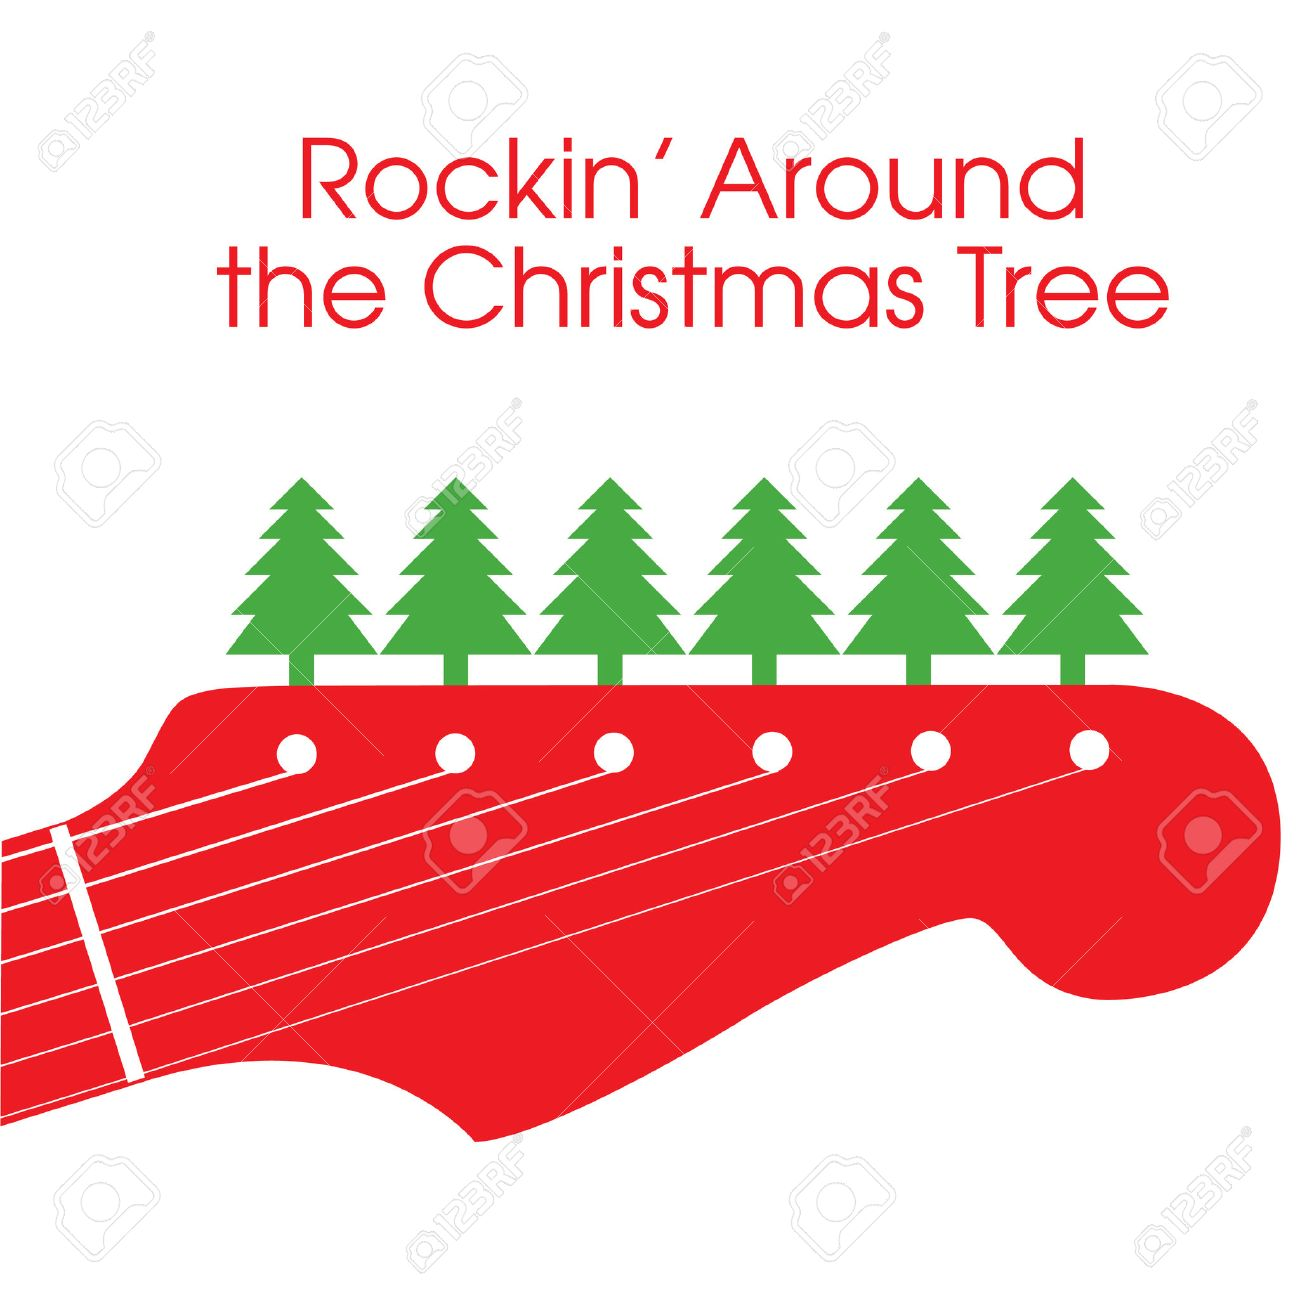 Rockin' Around The Christmas Tree Royalty Free Cliparts, Vectors ...